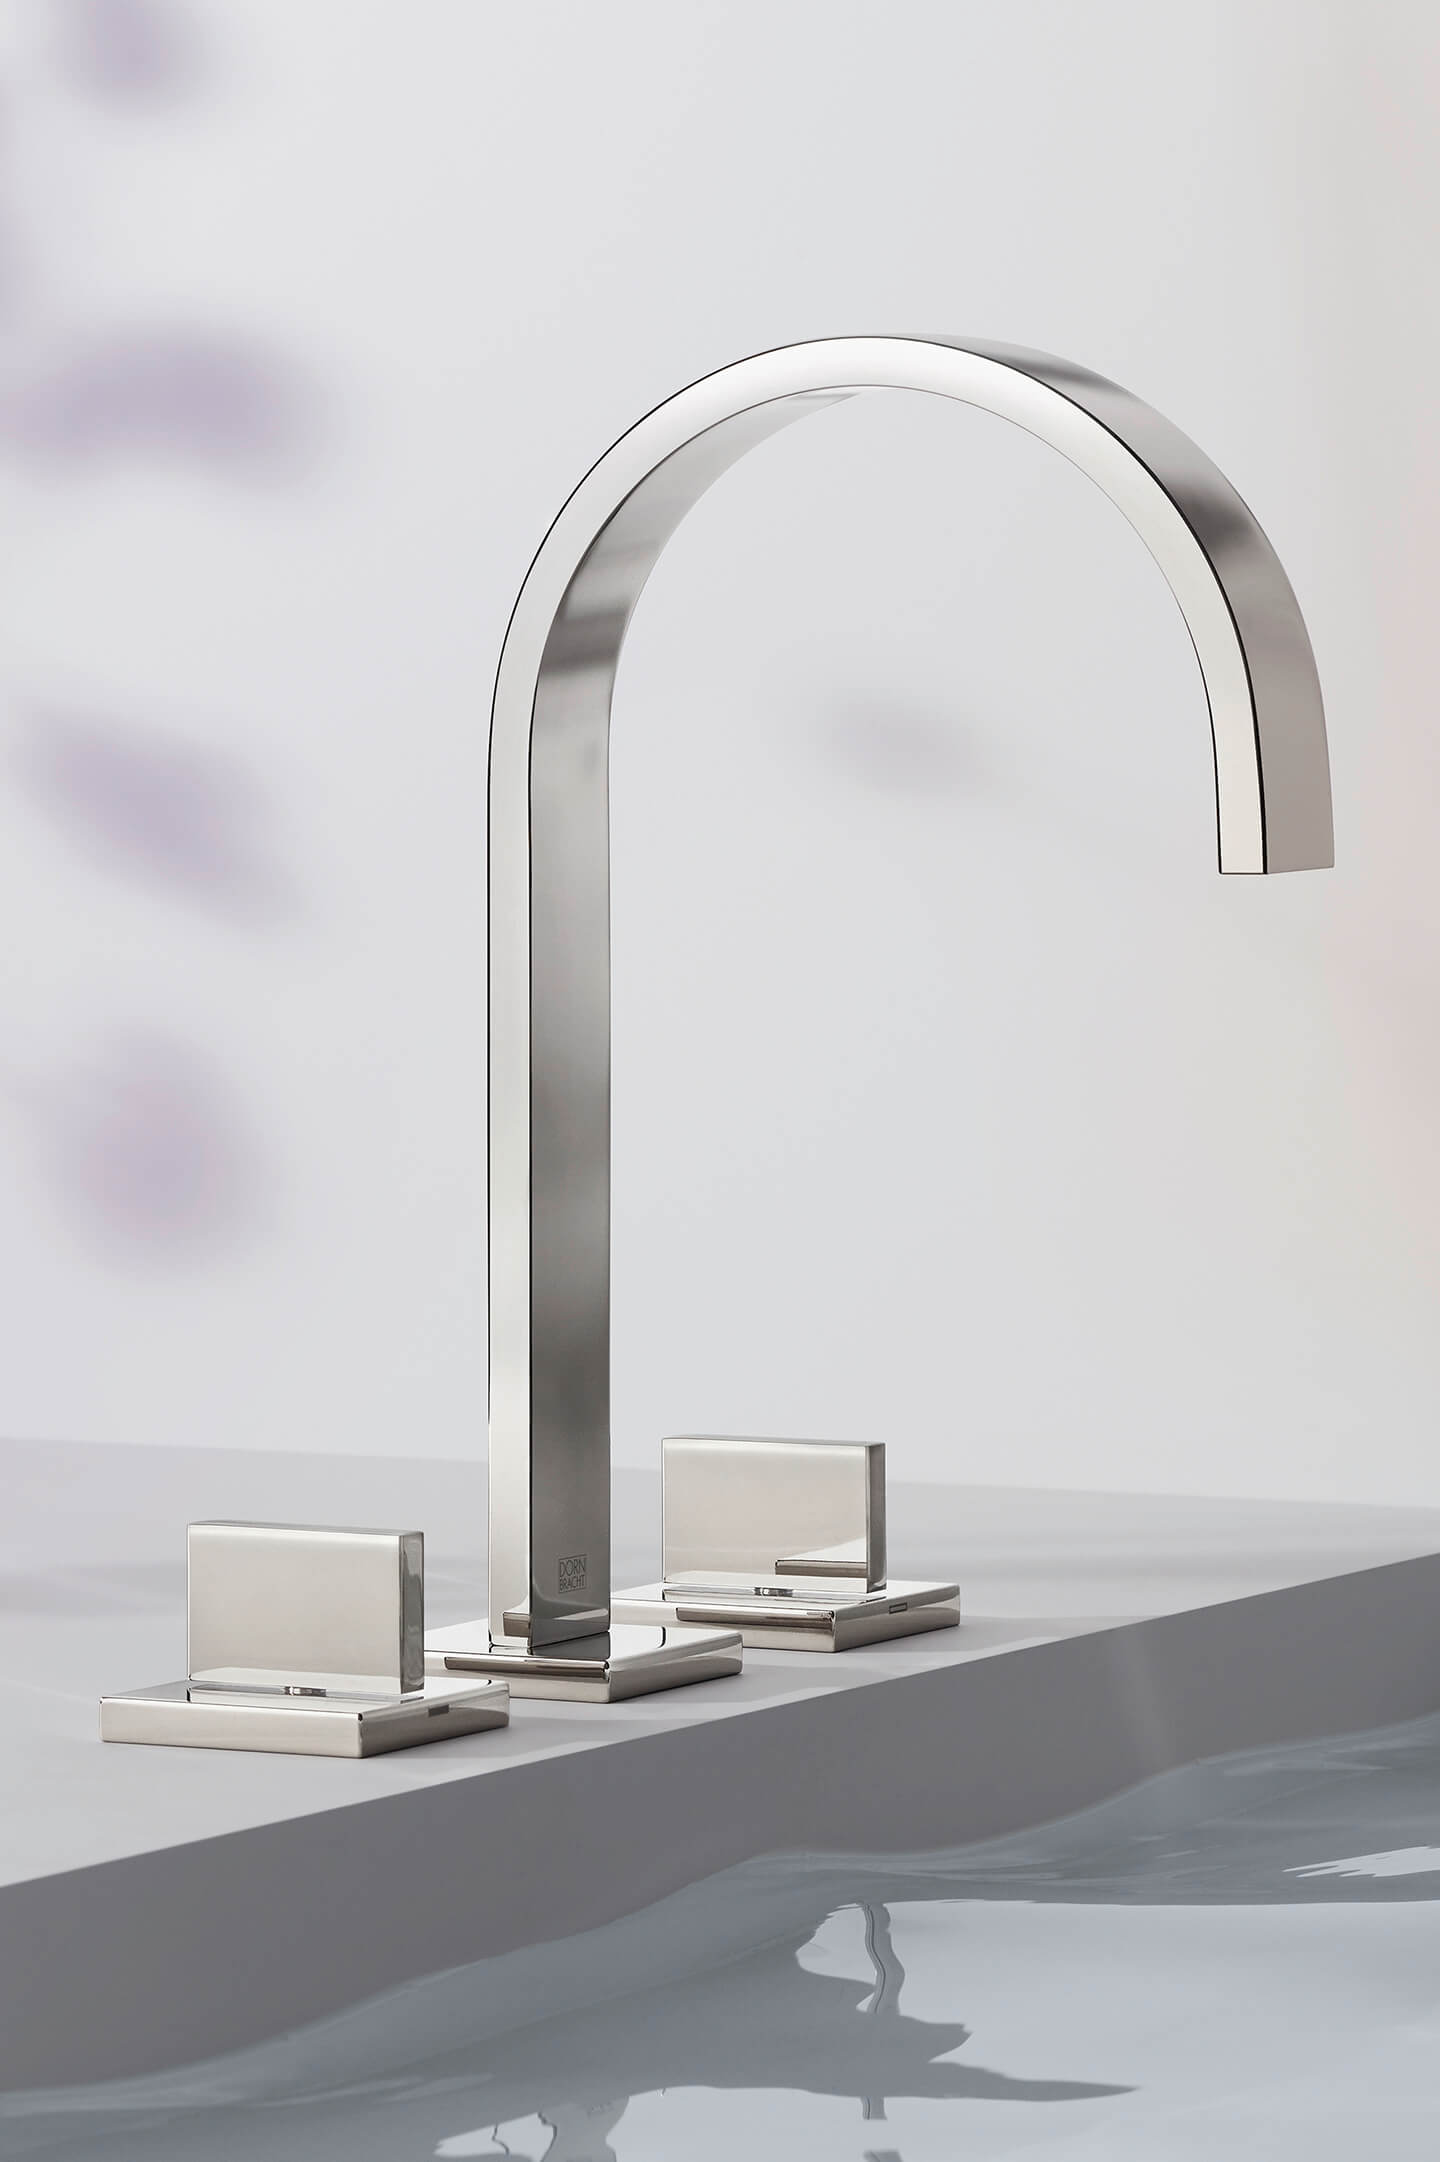 dornbracht-mem-luxury-bathroom-design-faucet